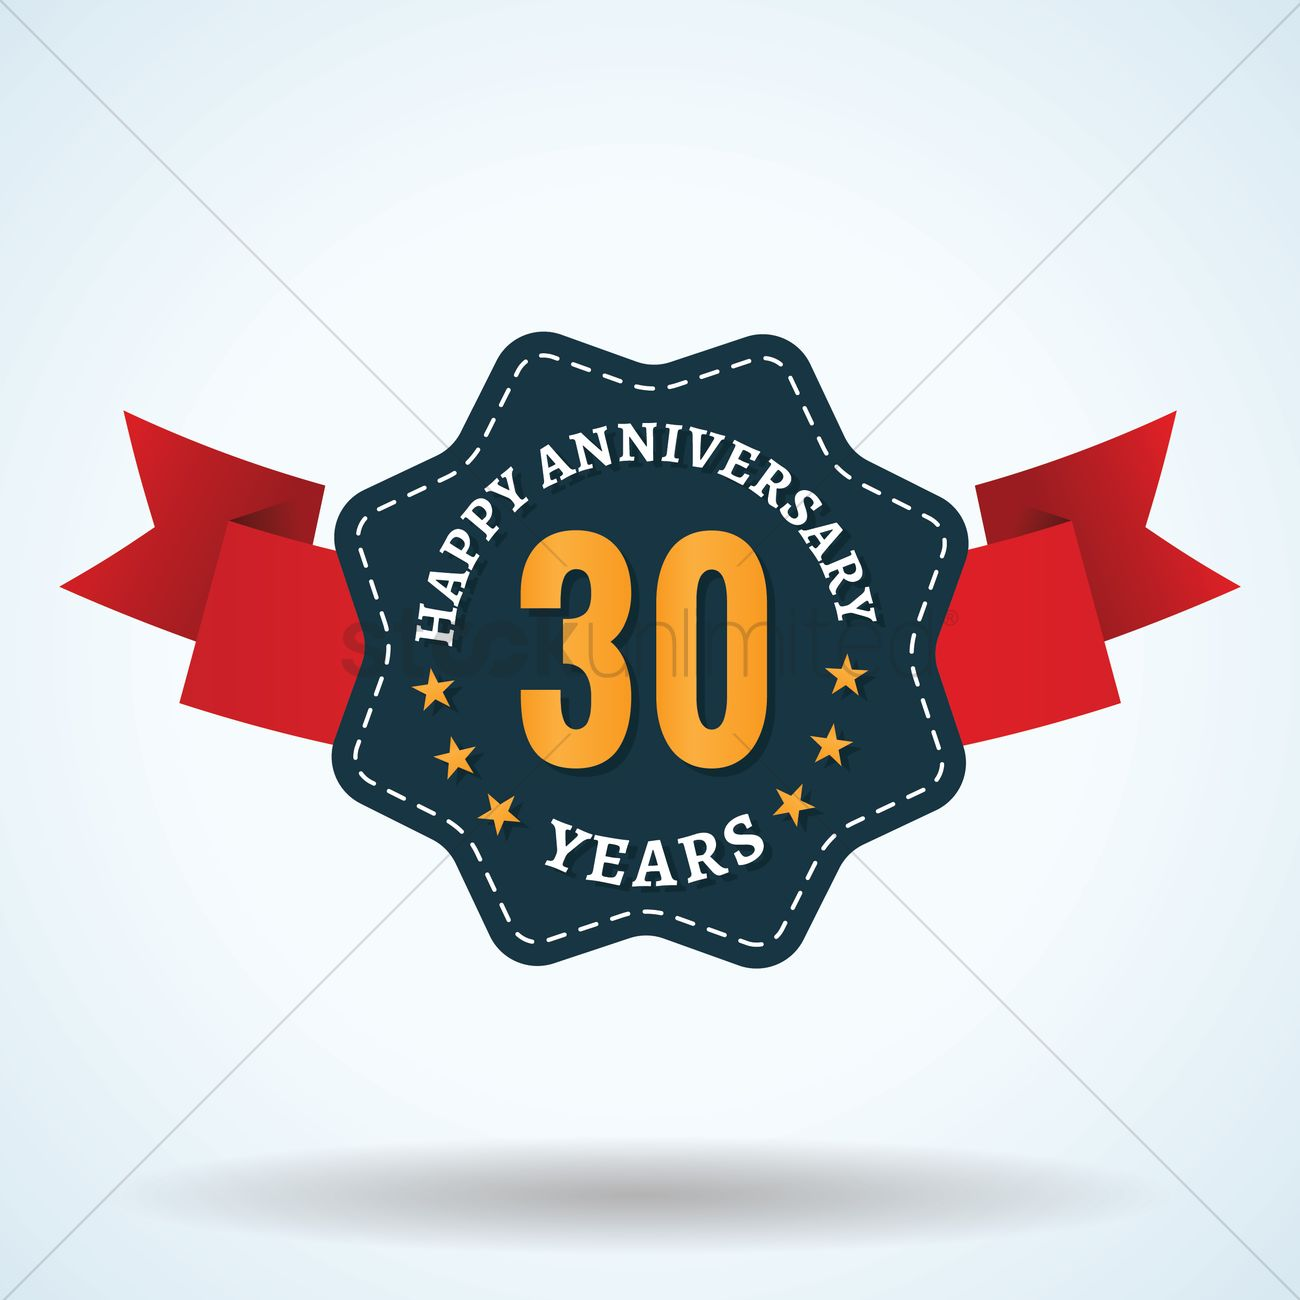 Thirty Years Anniversary Label Vector Image 1825368 Stockunlimited